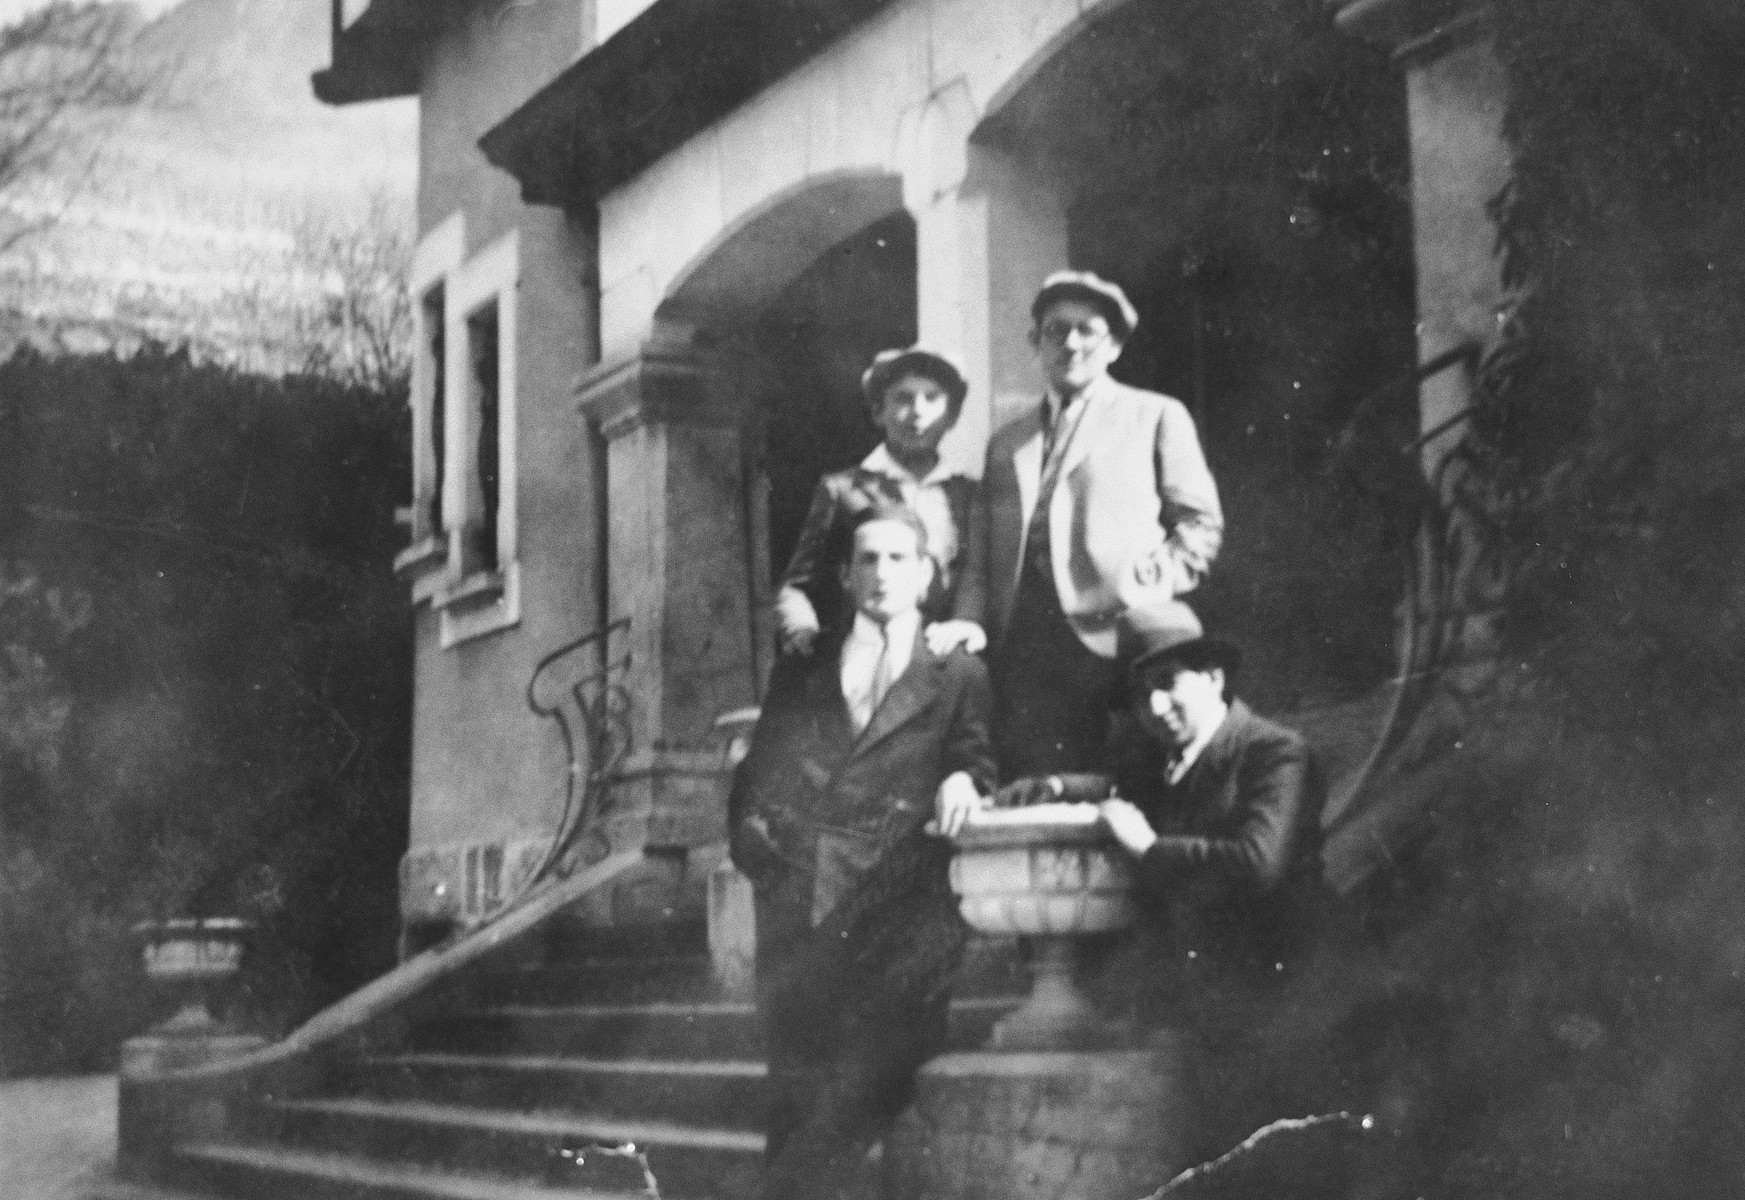 Four young men pose on the steps outside their yeshiva.